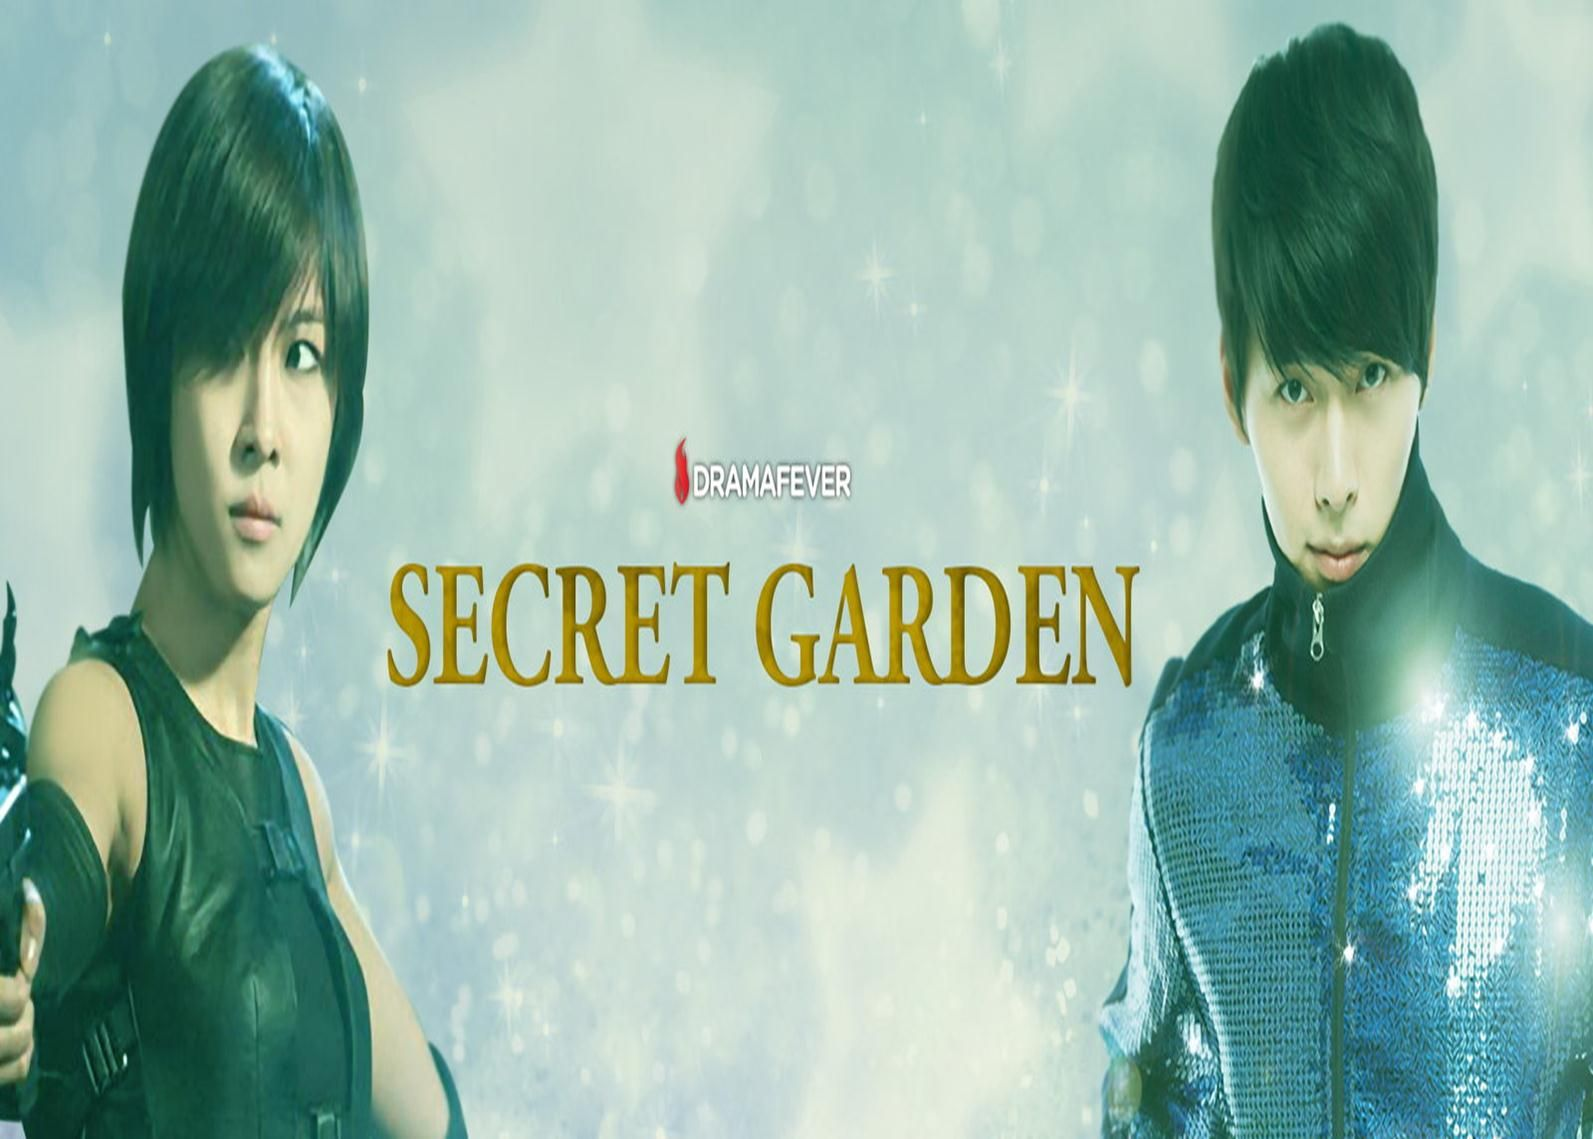 AWESOME!1 In this fantasy, romantic comedy, Secret Garden